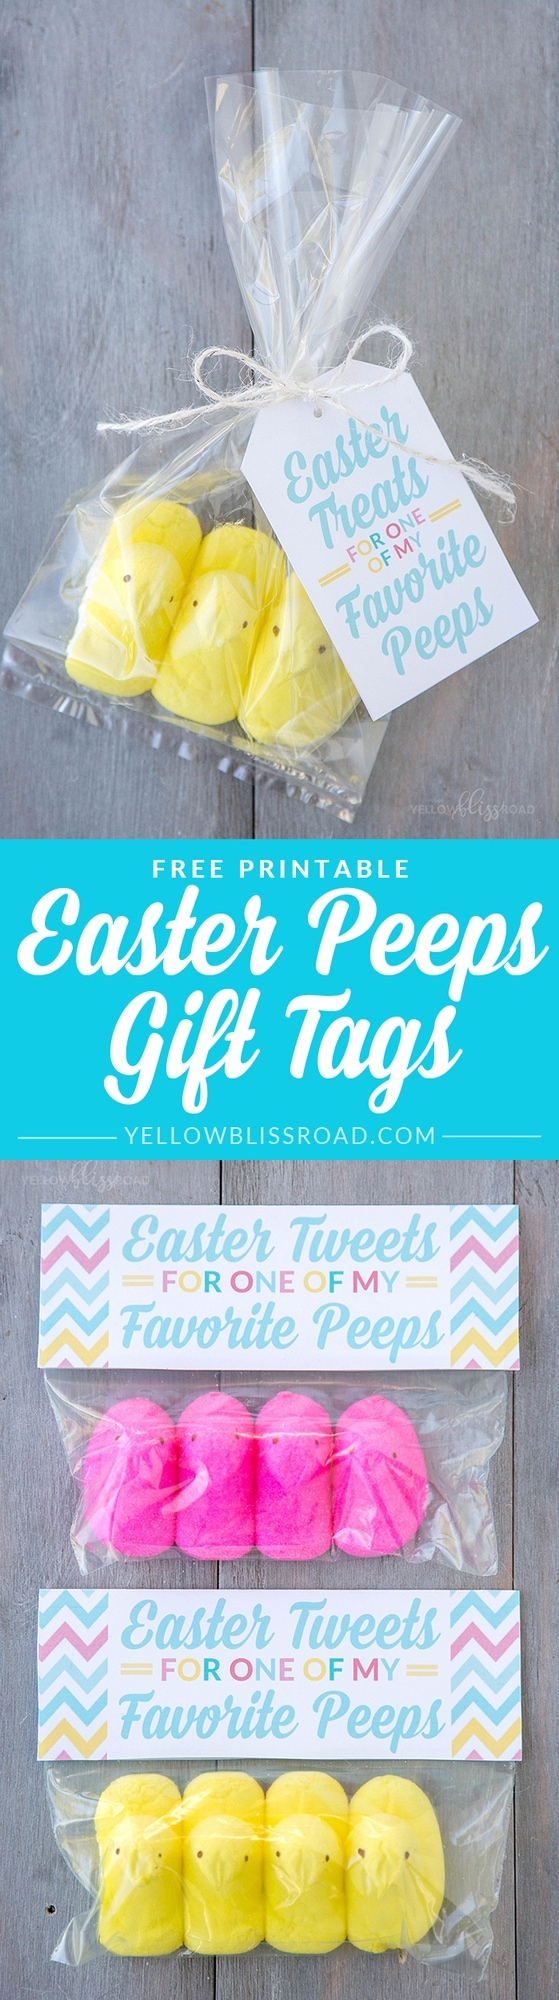 Peeps easter gift idea with free printables yellow bliss road free printable peeps easter gift tags use these free printable gift tags to make sweet negle Gallery